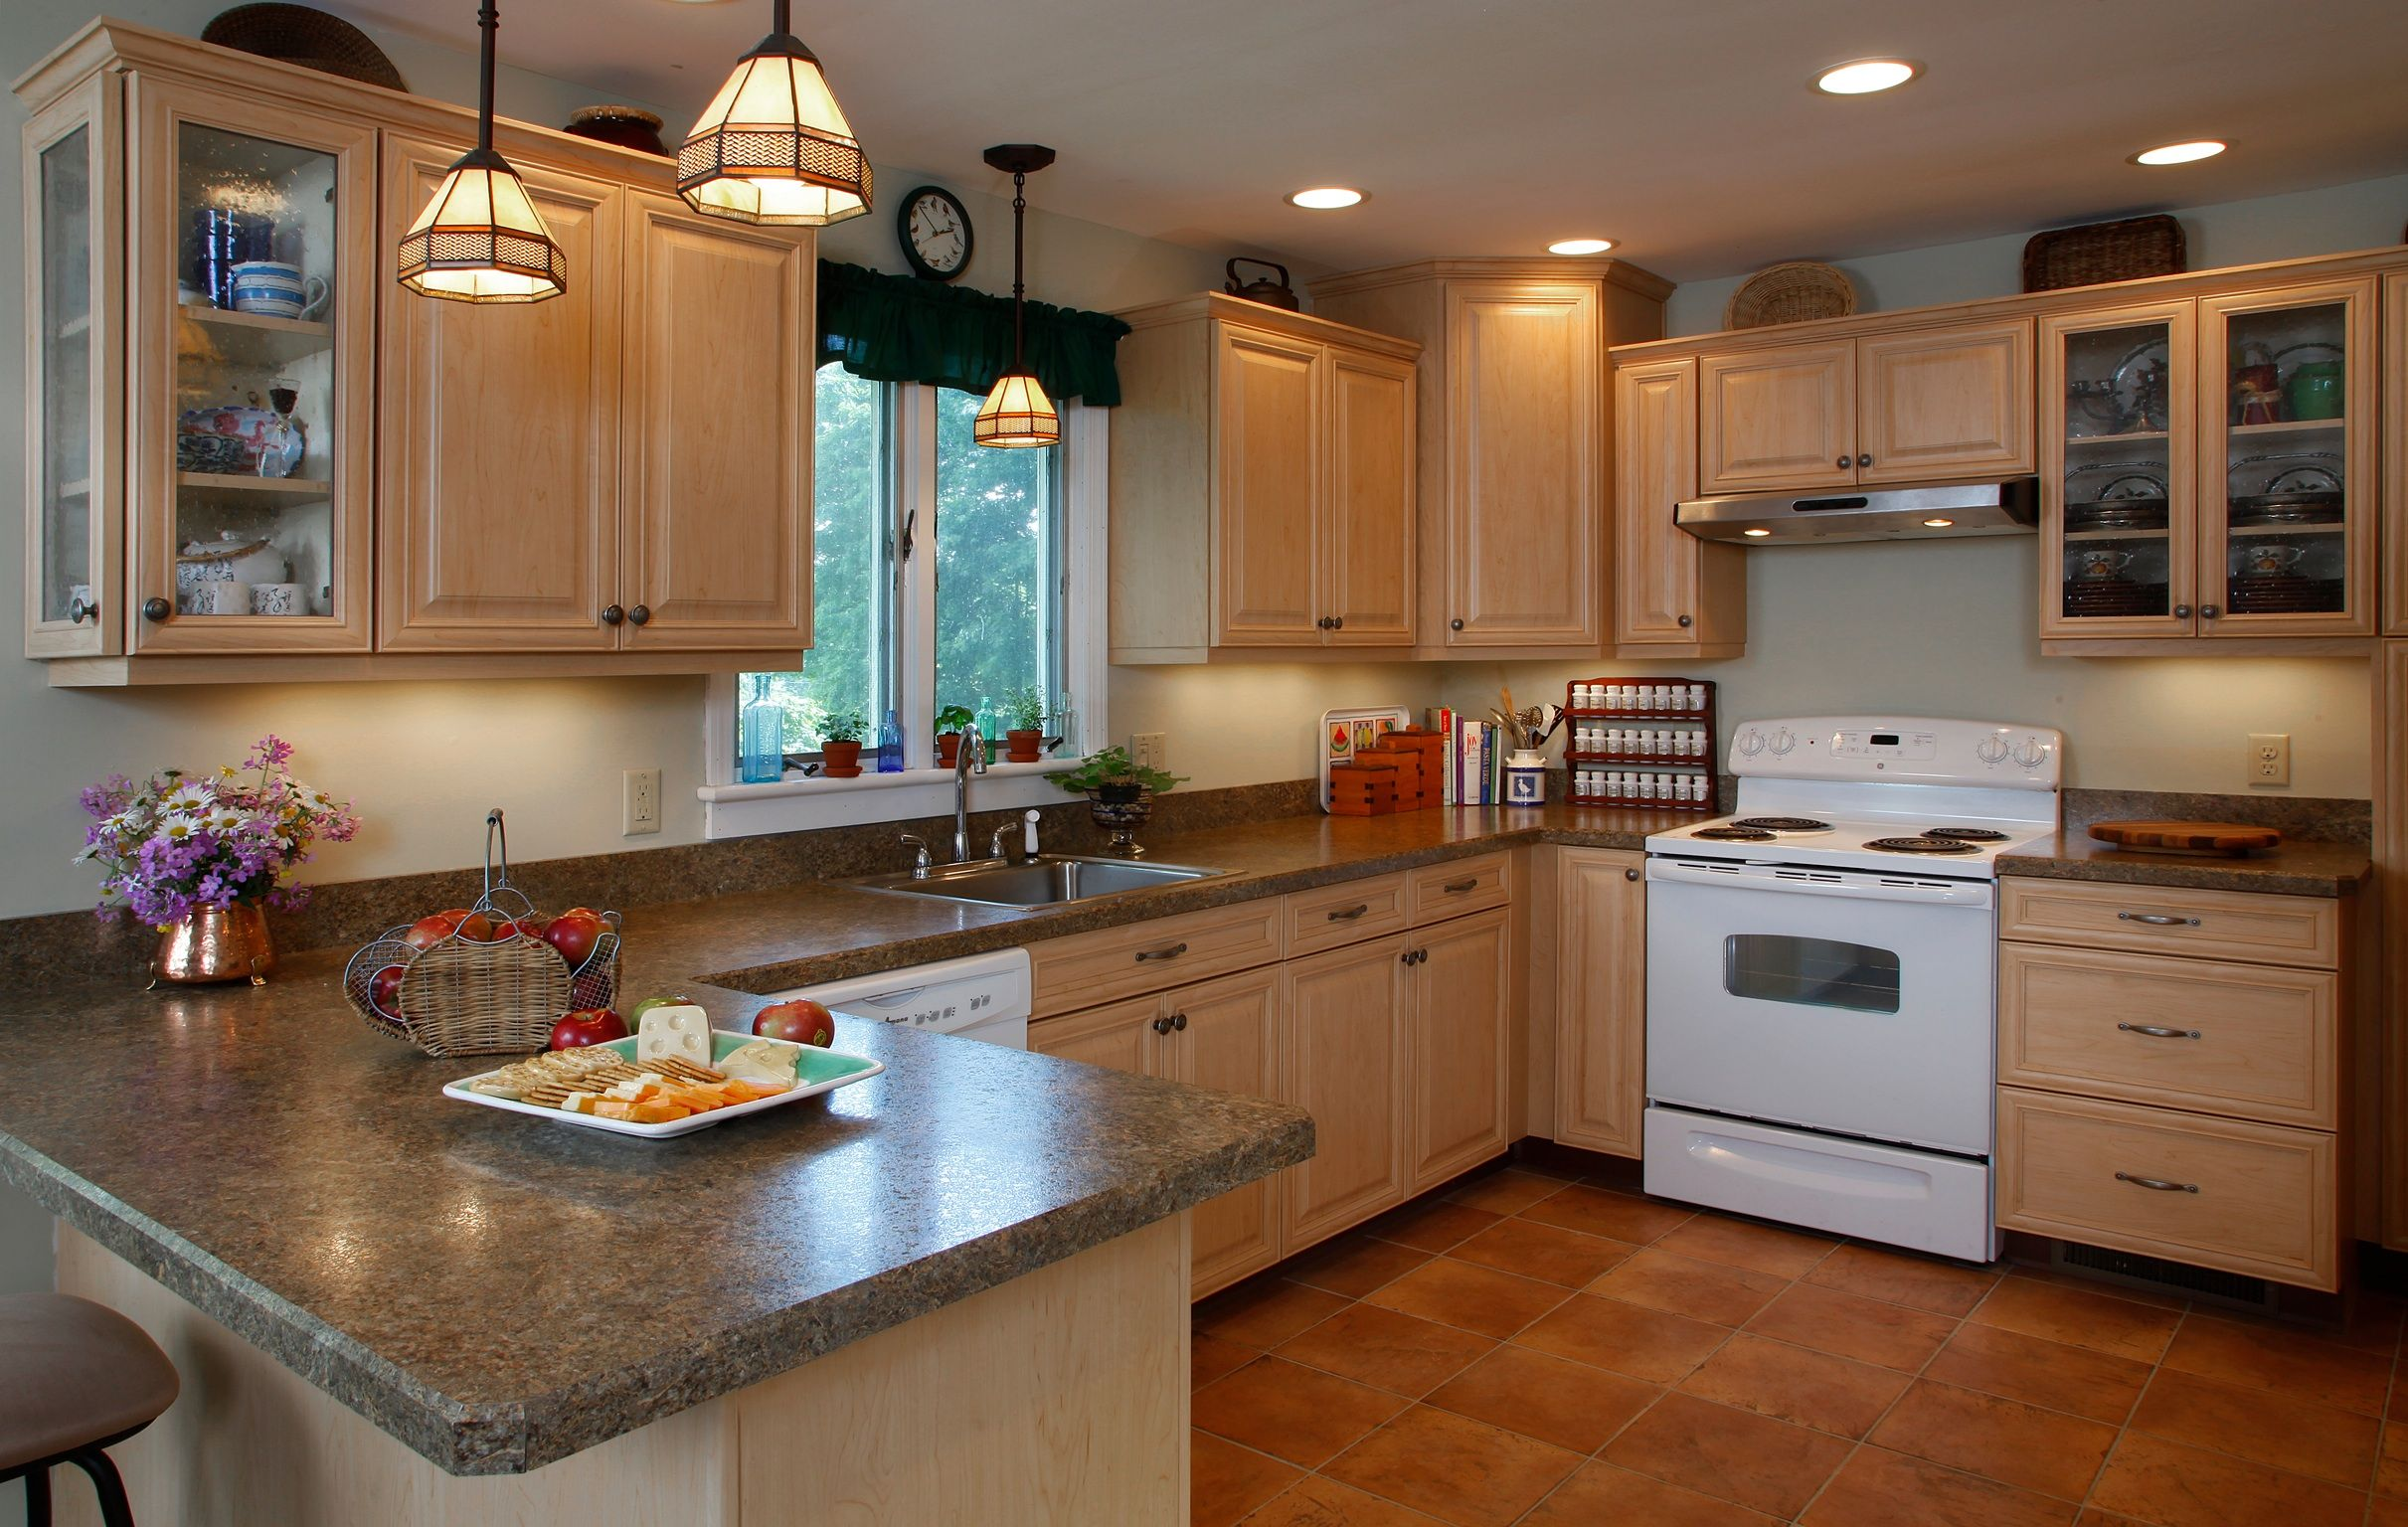 The pros and cons of the 4 inch backsplash kitchens for Most popular backsplash